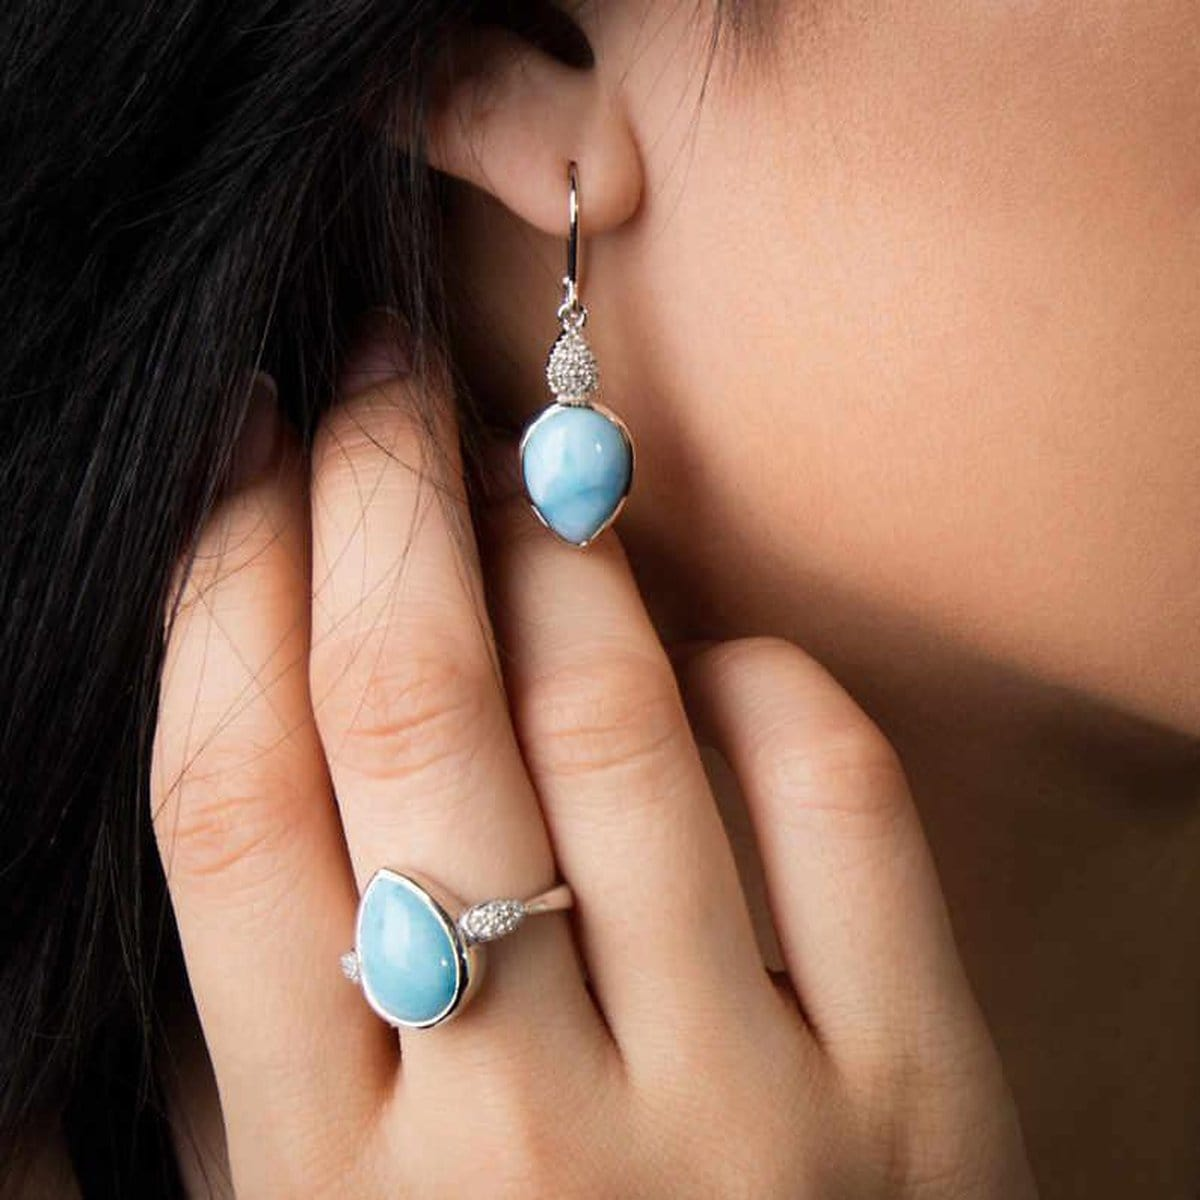 Bliss Pear Earrings - Eblis0P-00 - Marahlago Larimar